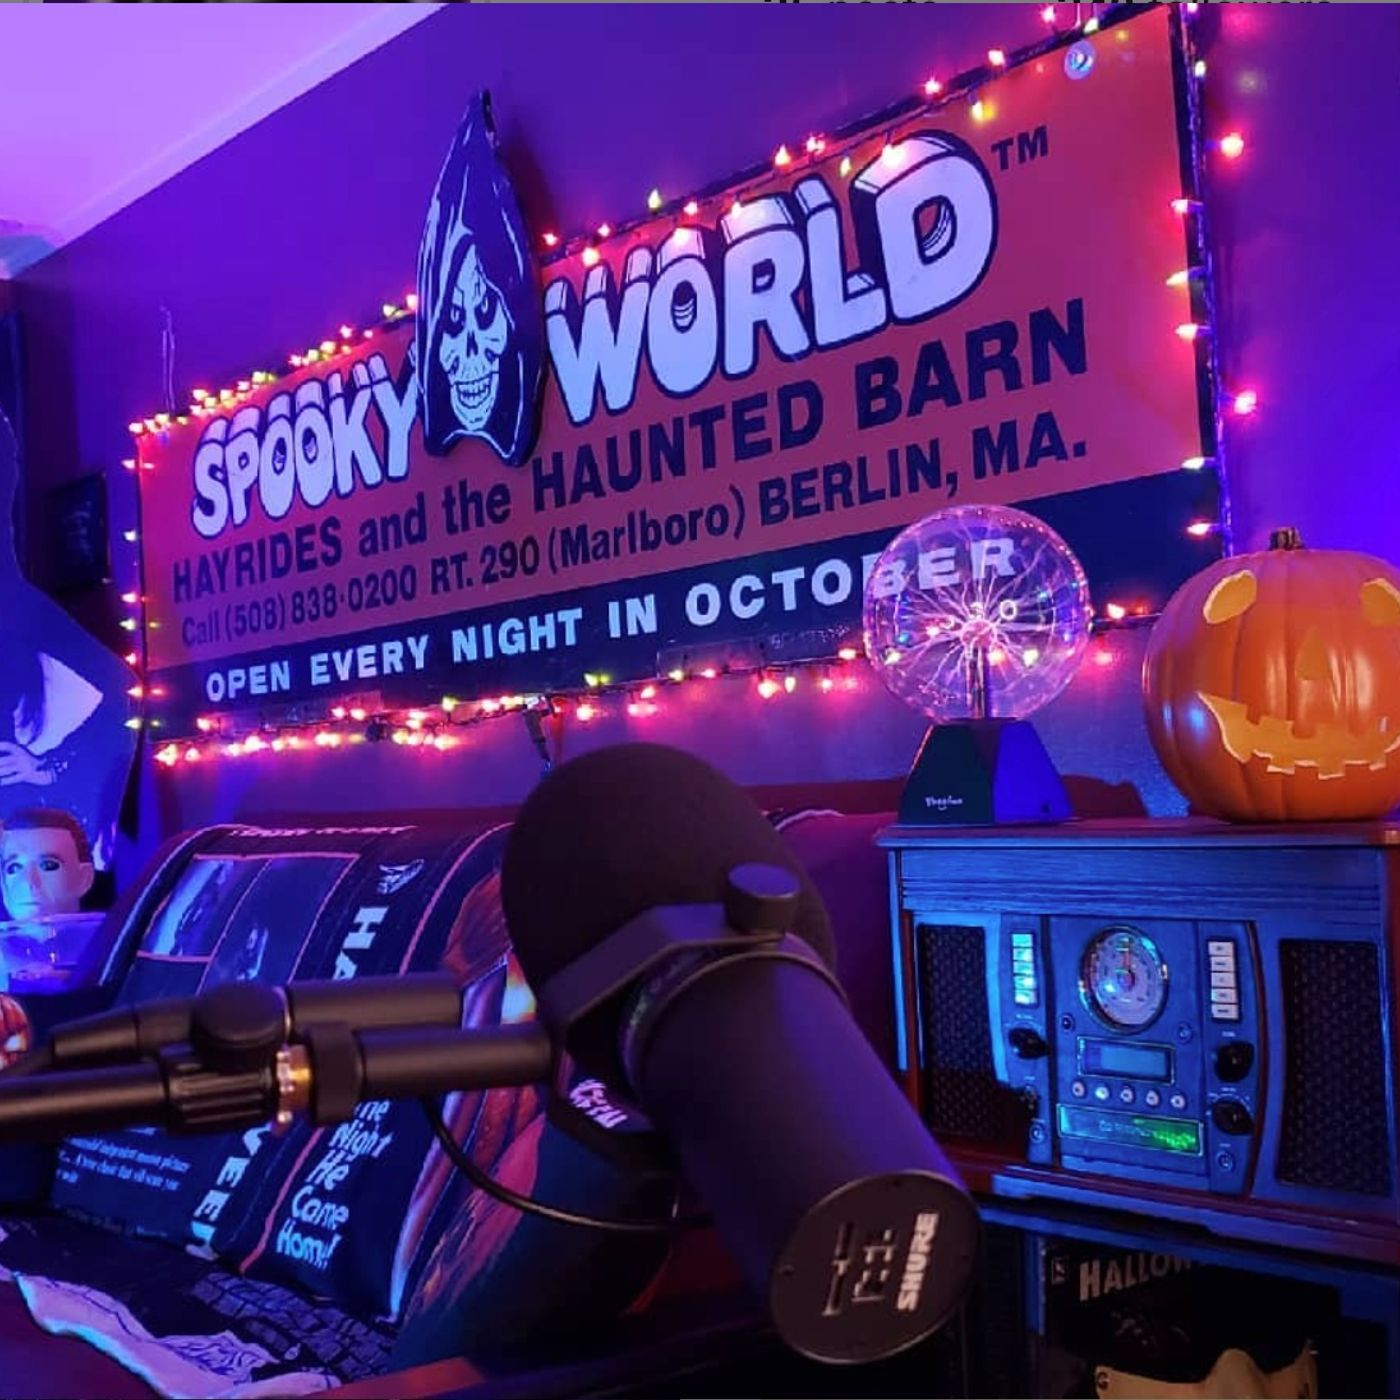 Interview w/ The Crew of SpookyWorld - The Movie!